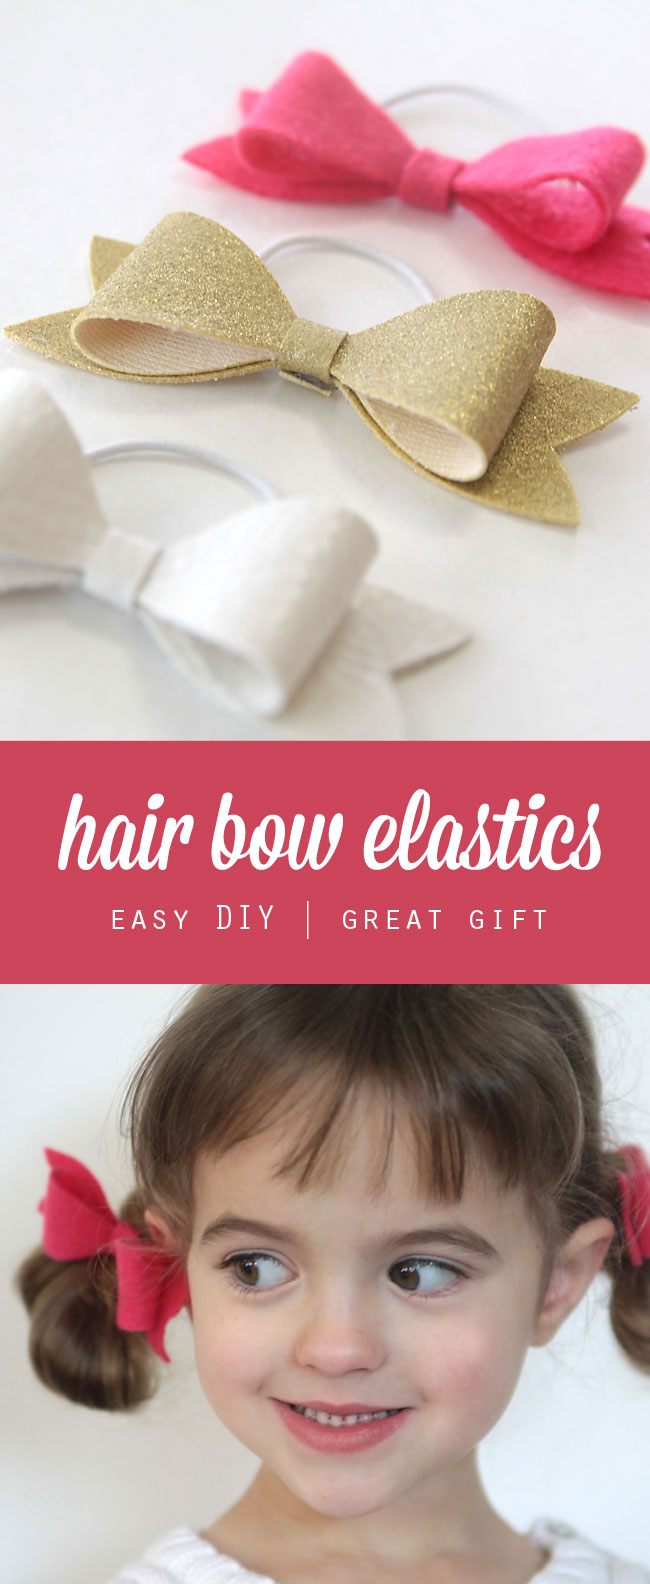 hair bow elastics; little girl with hows in her hair